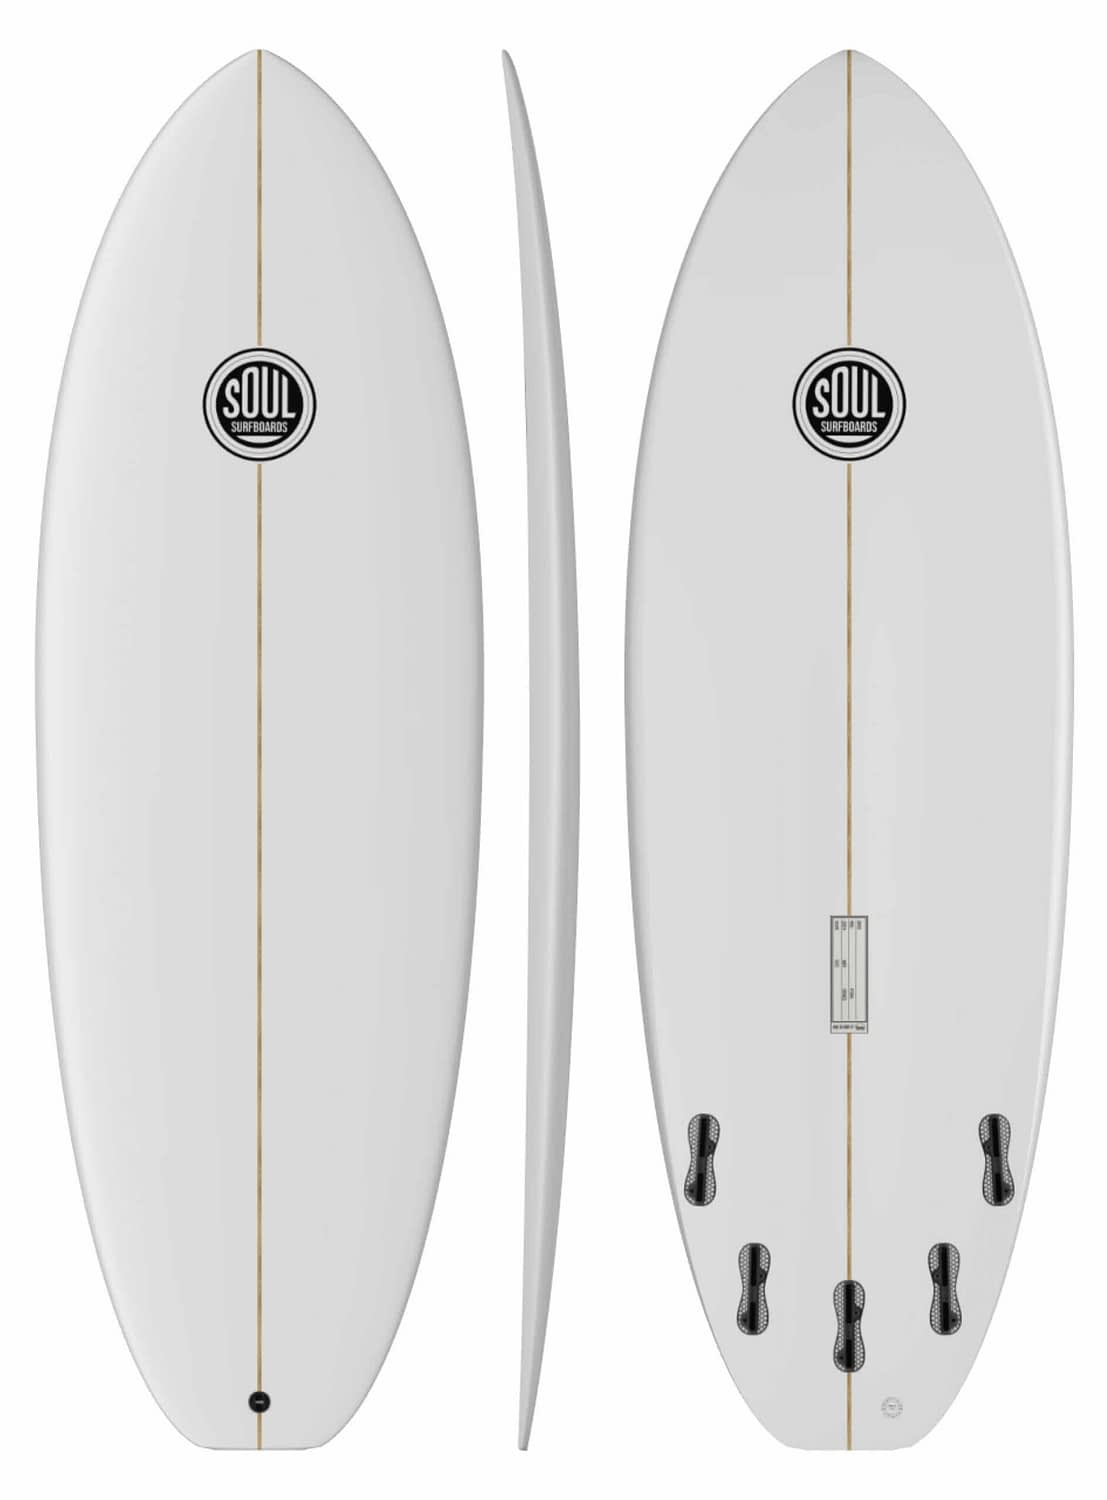 LITTLE BUDY SOUL SURFBOARDS